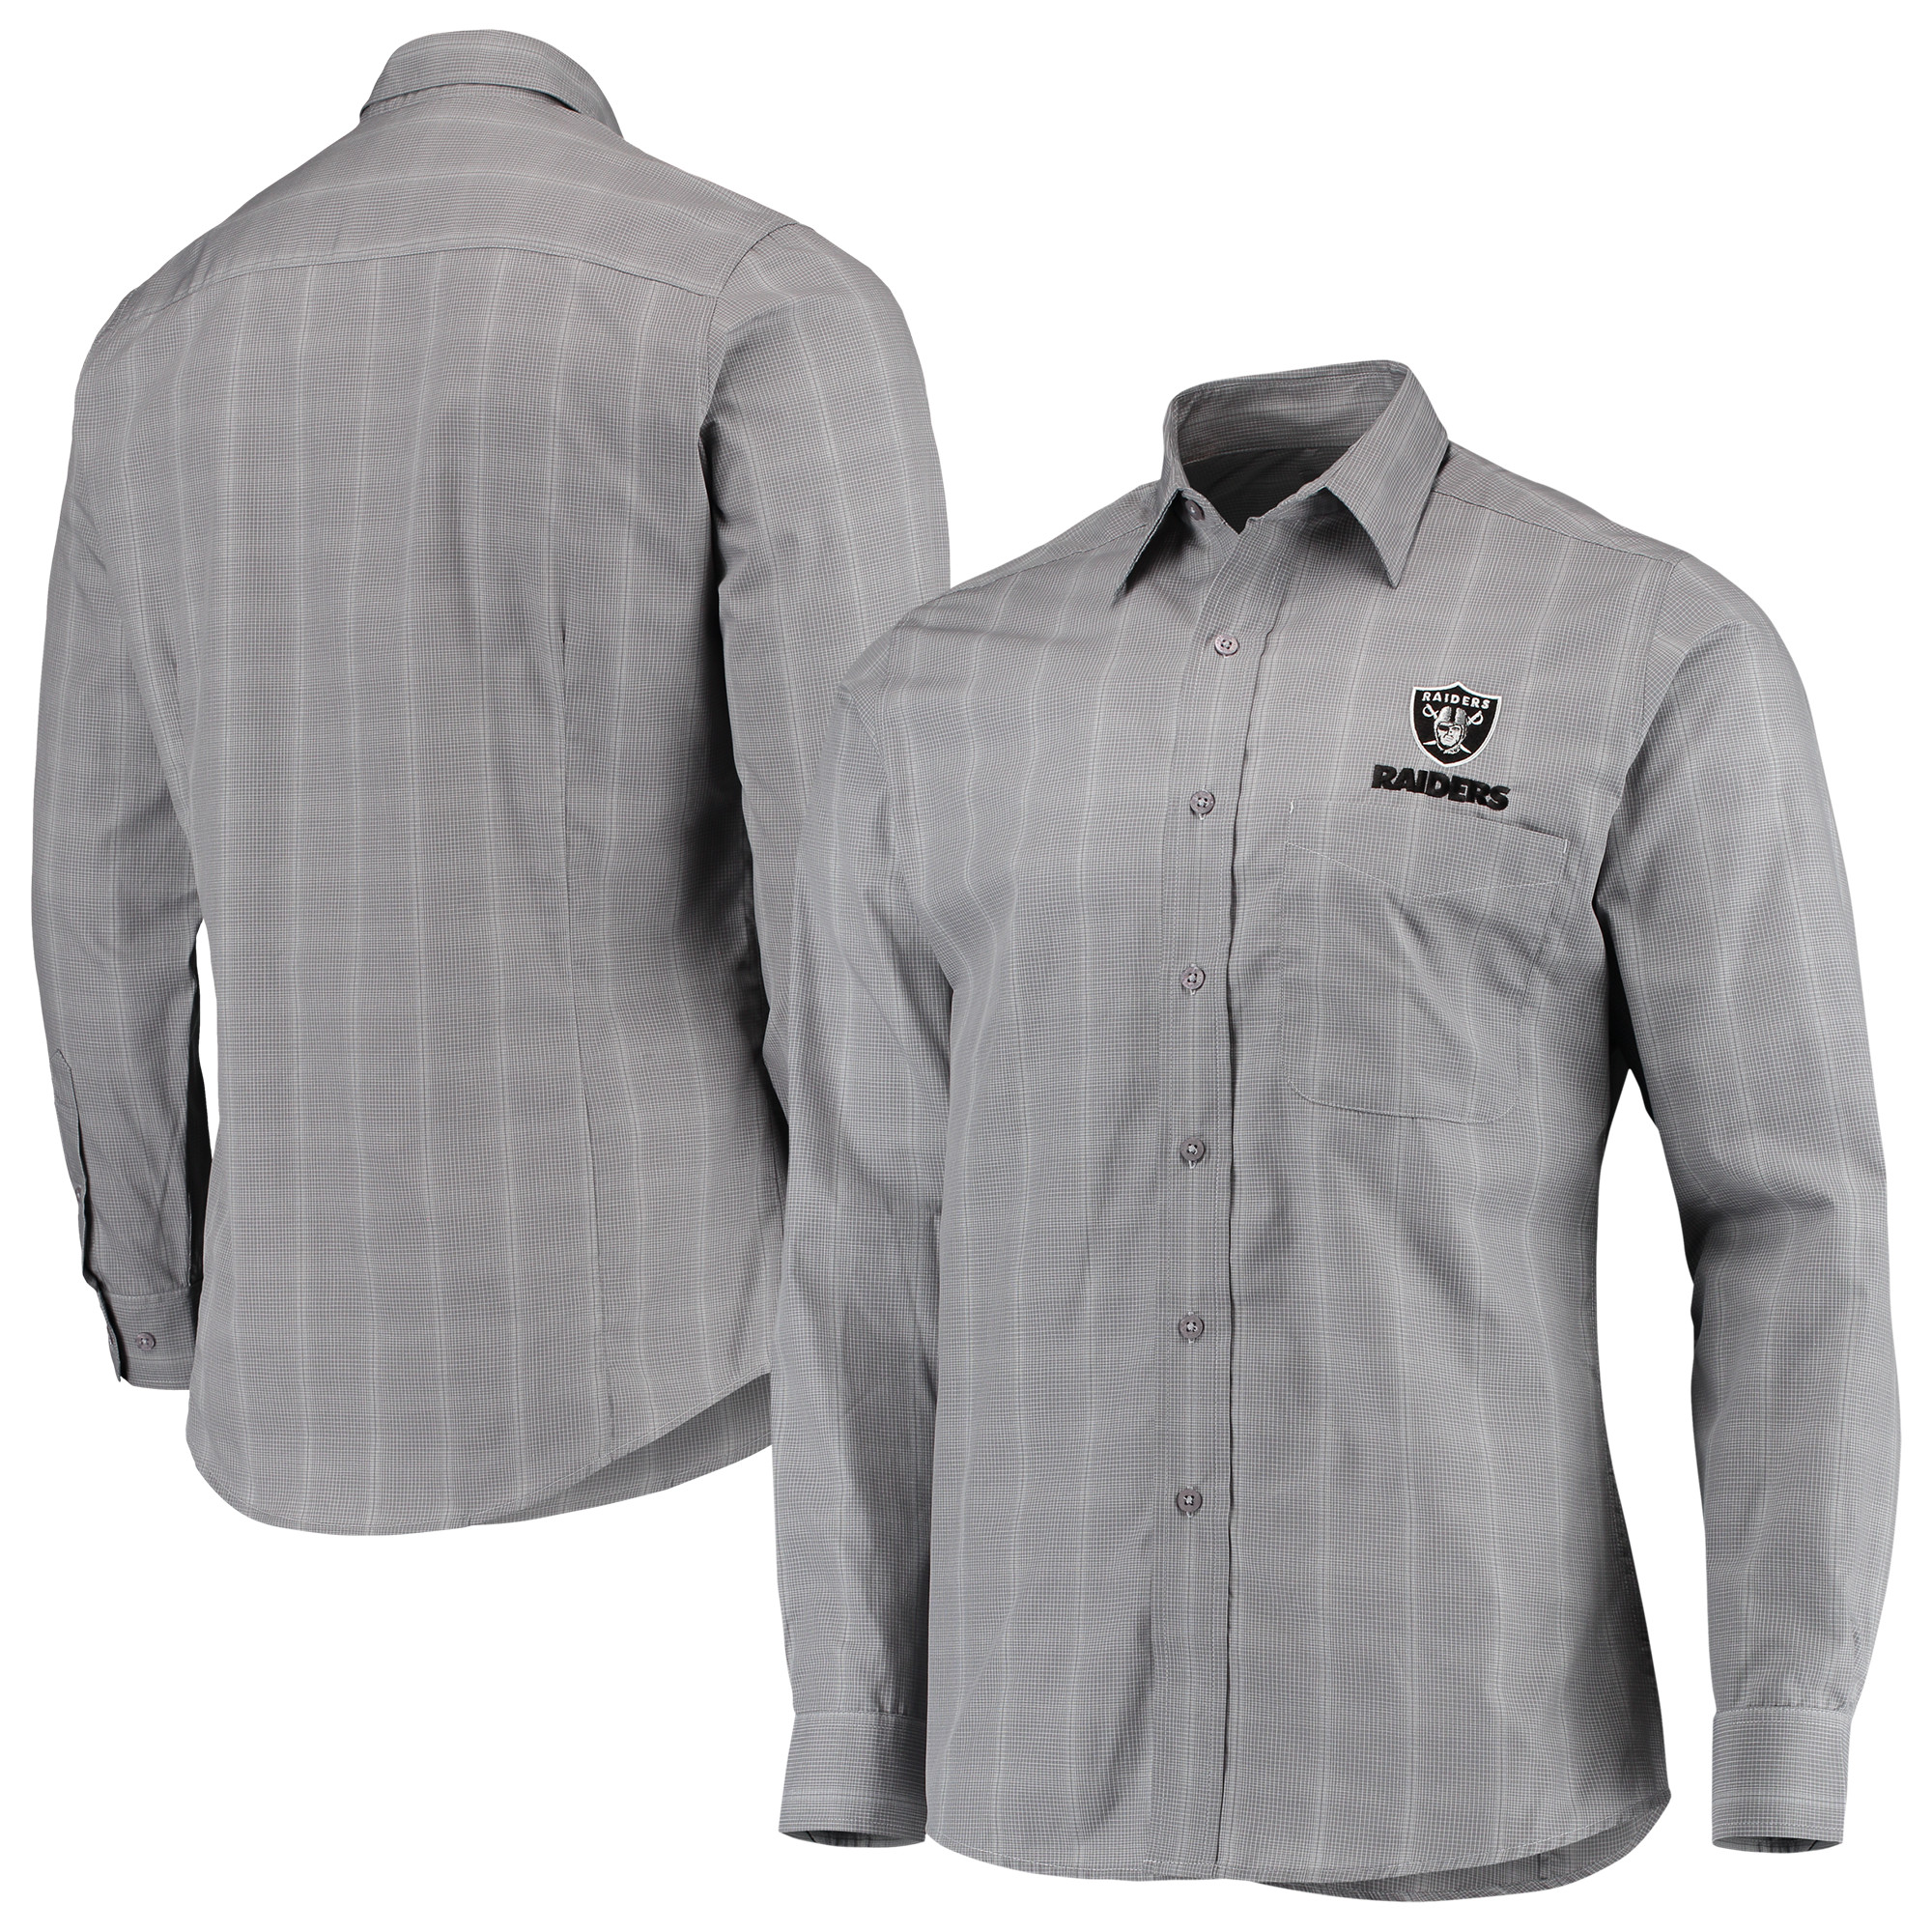 Oakland Raiders Antigua Agent Woven Long Sleeve Button-Up Shirt - Charcoal